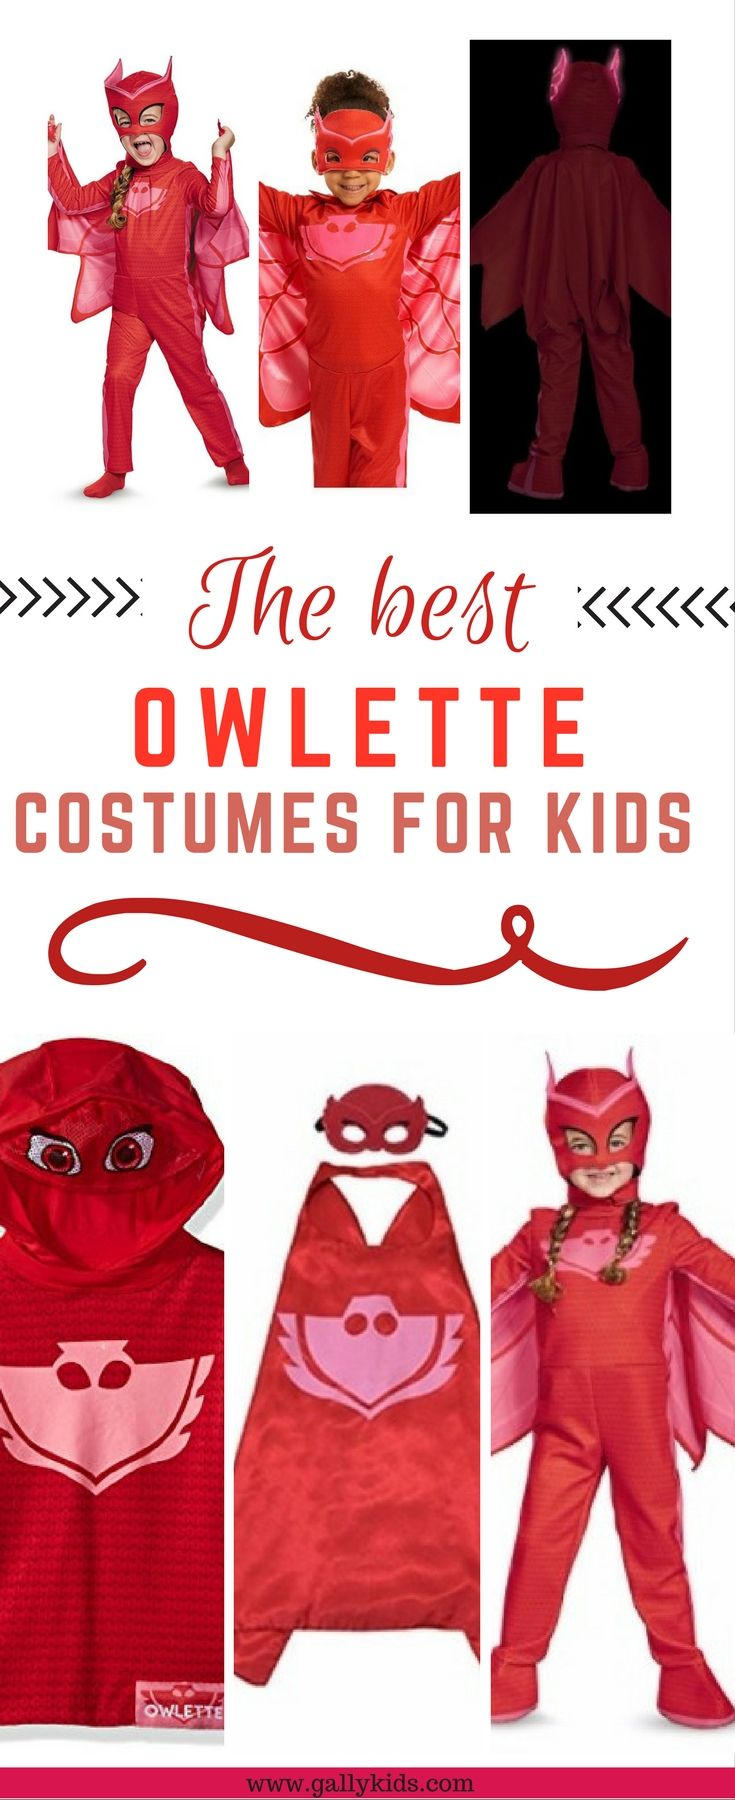 PJ masks Owlette costume ideas for toddlers. Some of the coolest ones out there. check out the tutu dress! or the cape and mask!